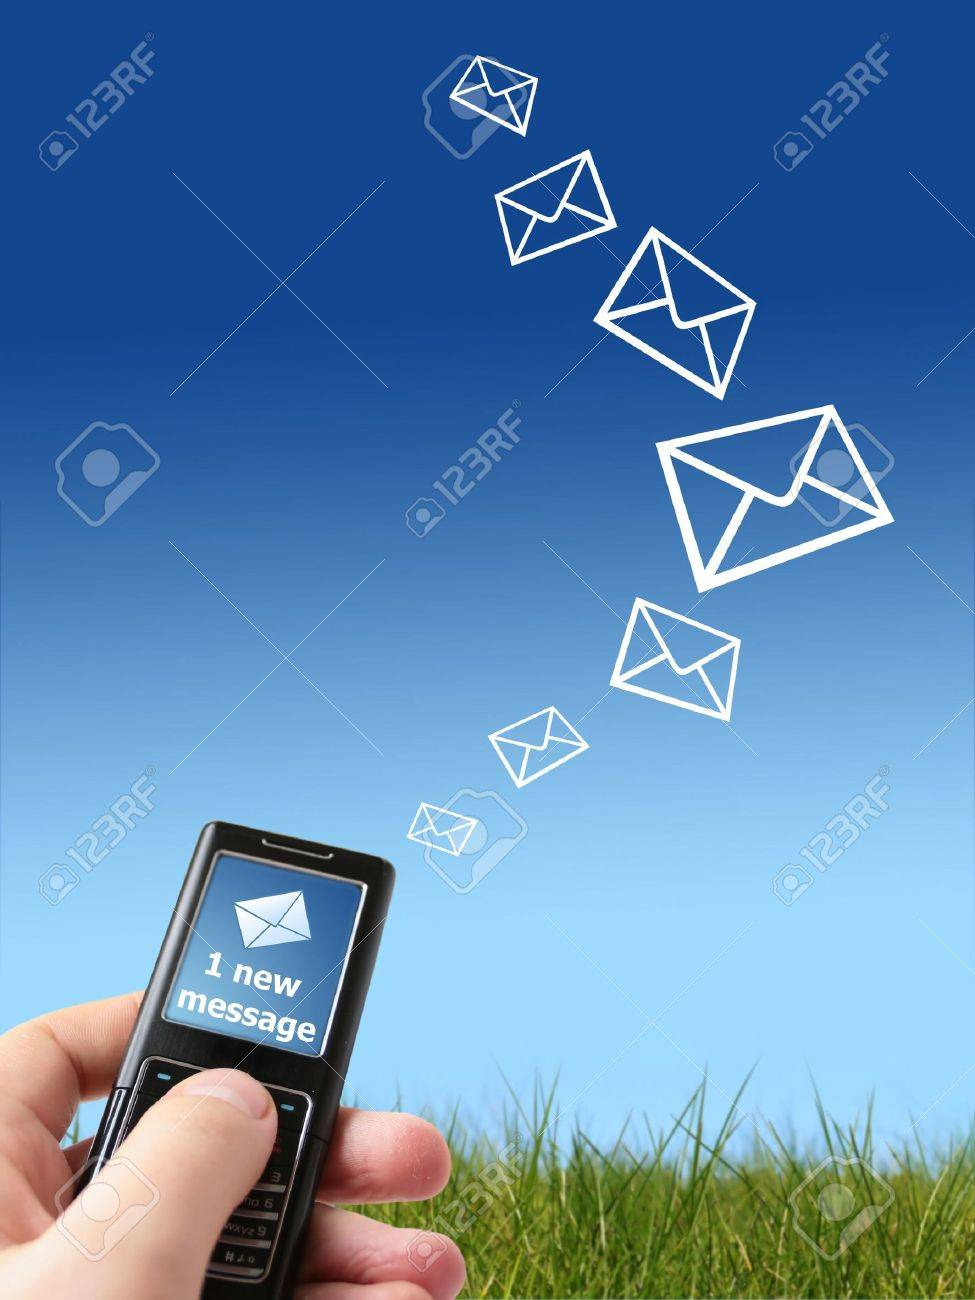 Mobile phone in hand. Communication conceptual image. Stock Photo - 4641512